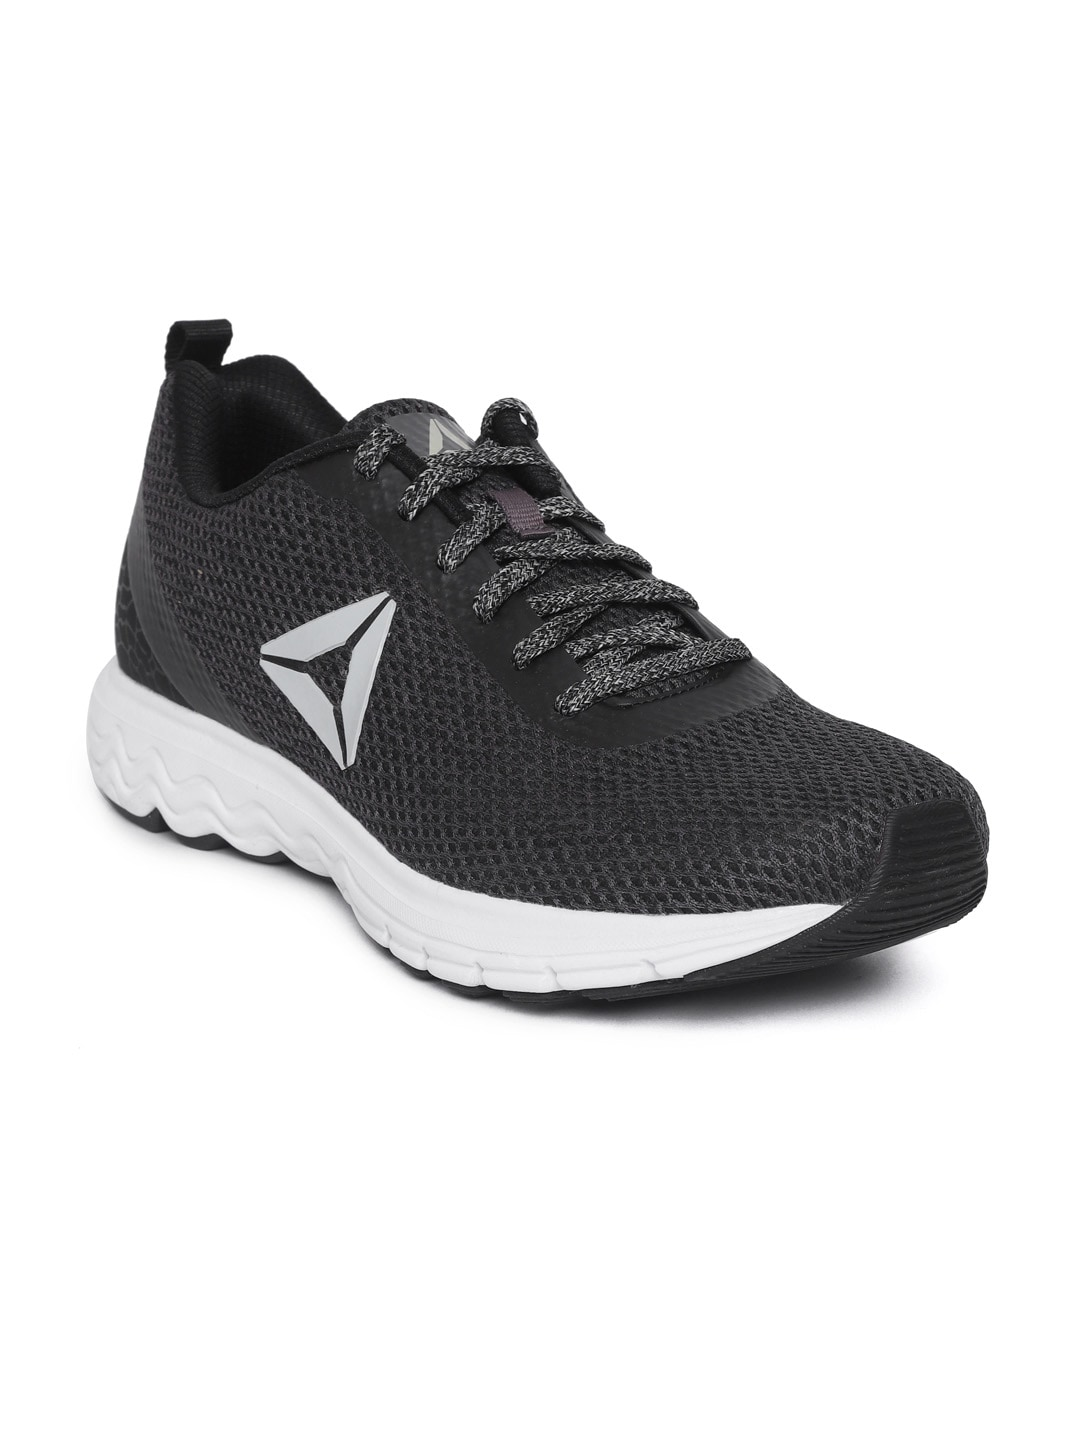 c6a5999459735 Reebok Shoes - Buy Reebok Shoes For Men   Women Online